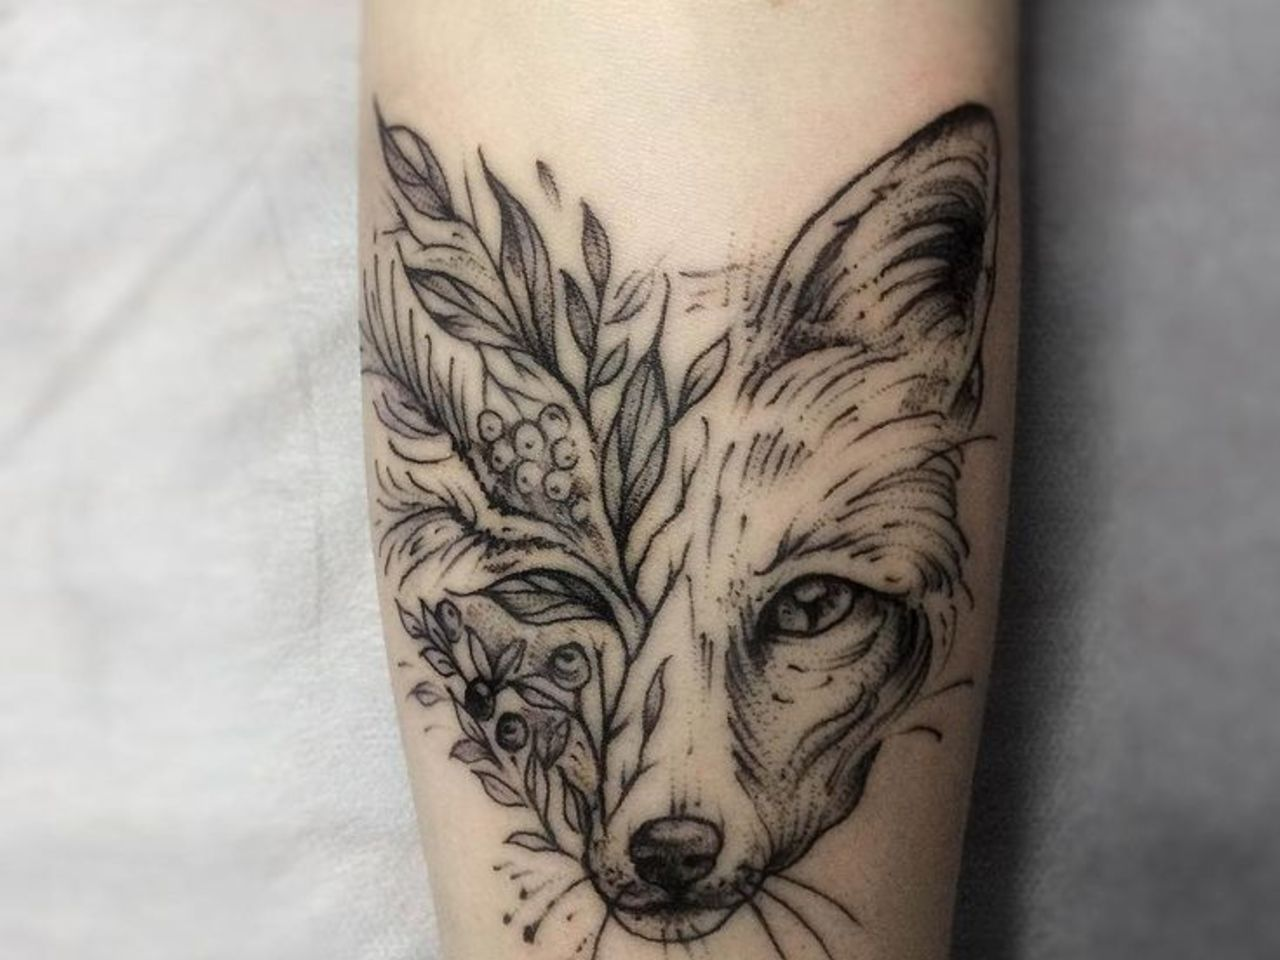 Tattoo style recognition